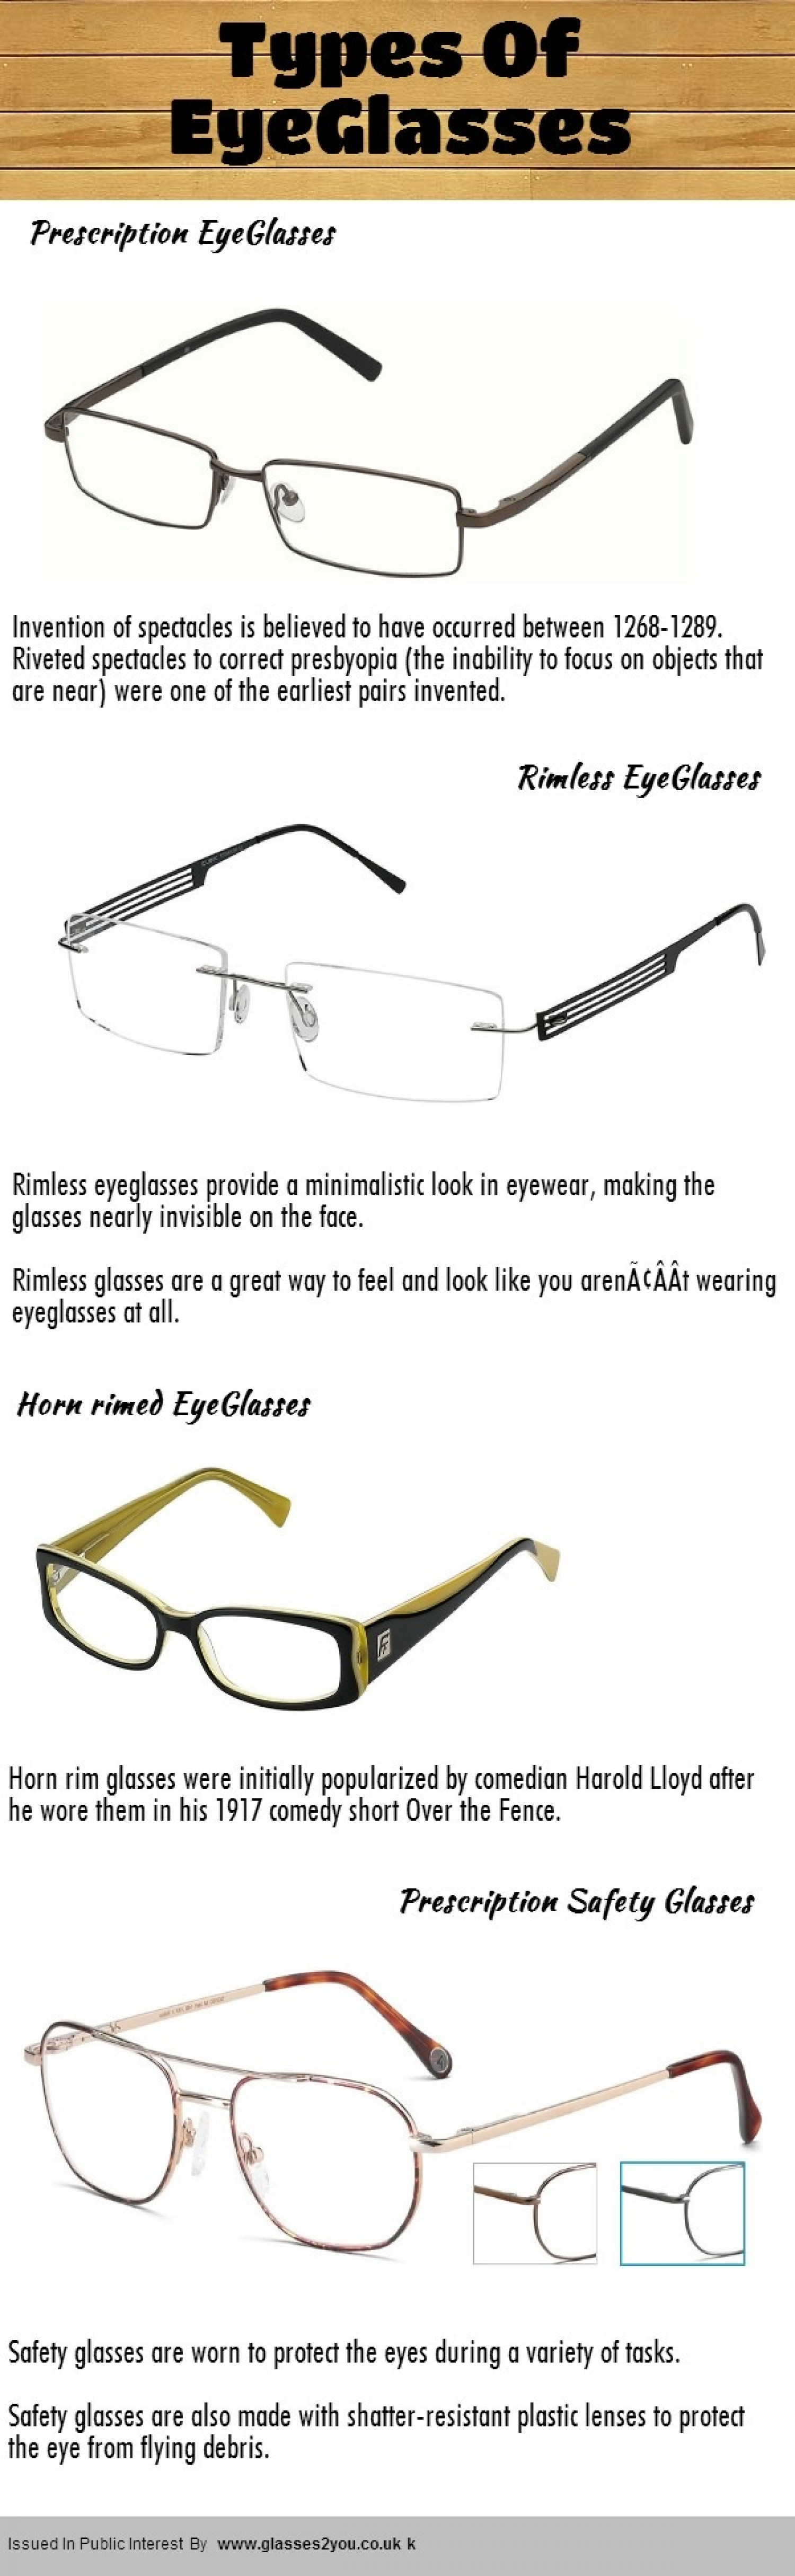 Types Of Eyeglasses Visual.ly